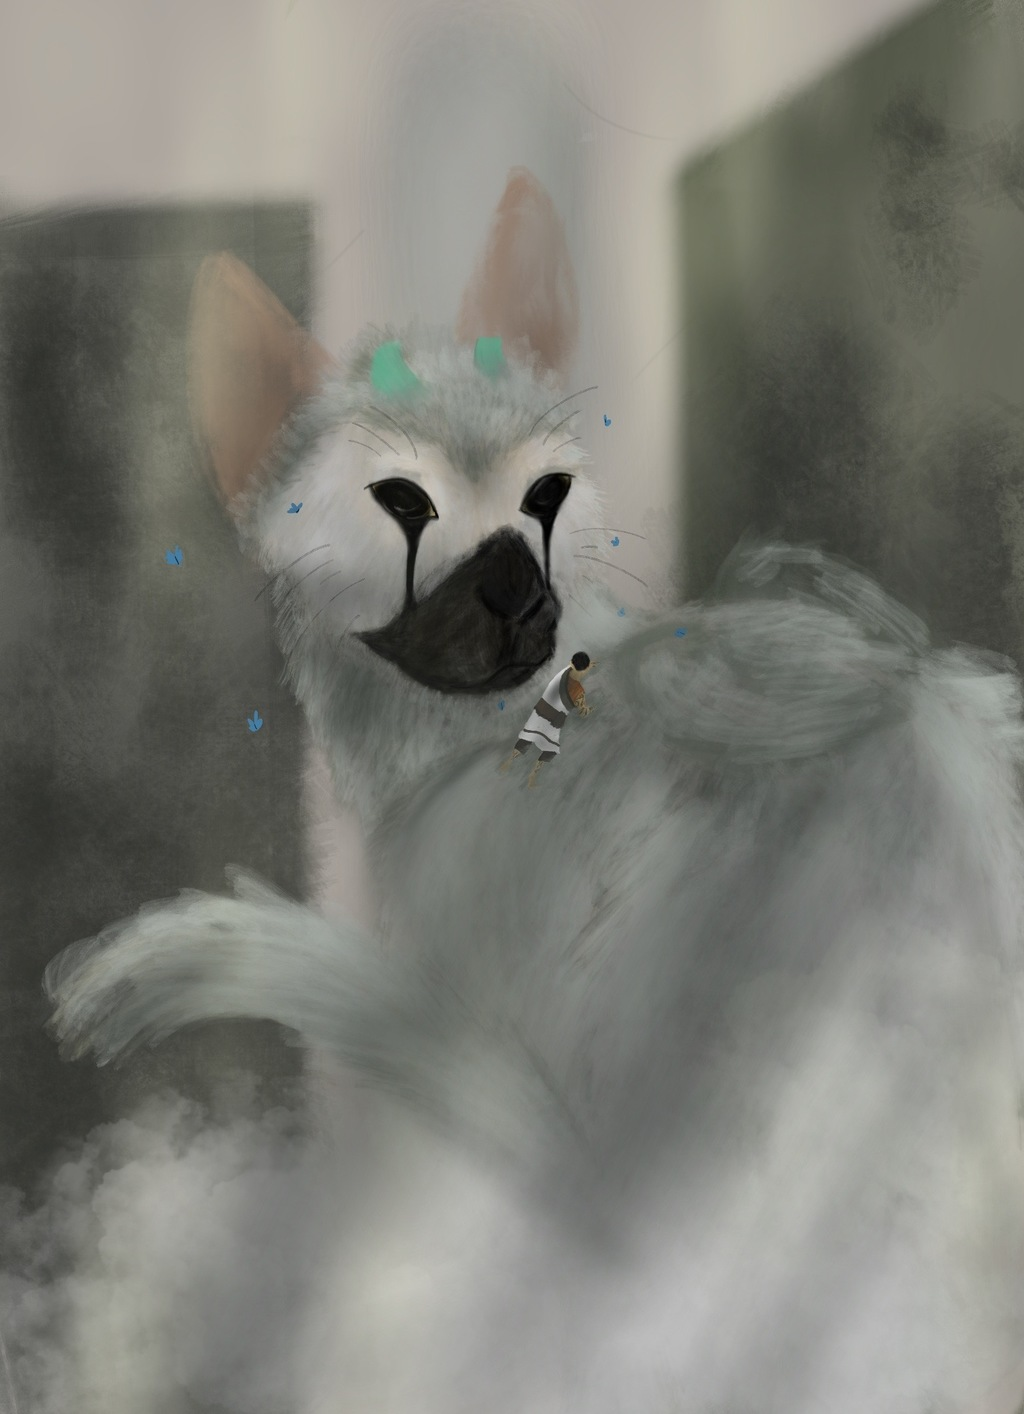 Digital Painting Example 2 - Trico